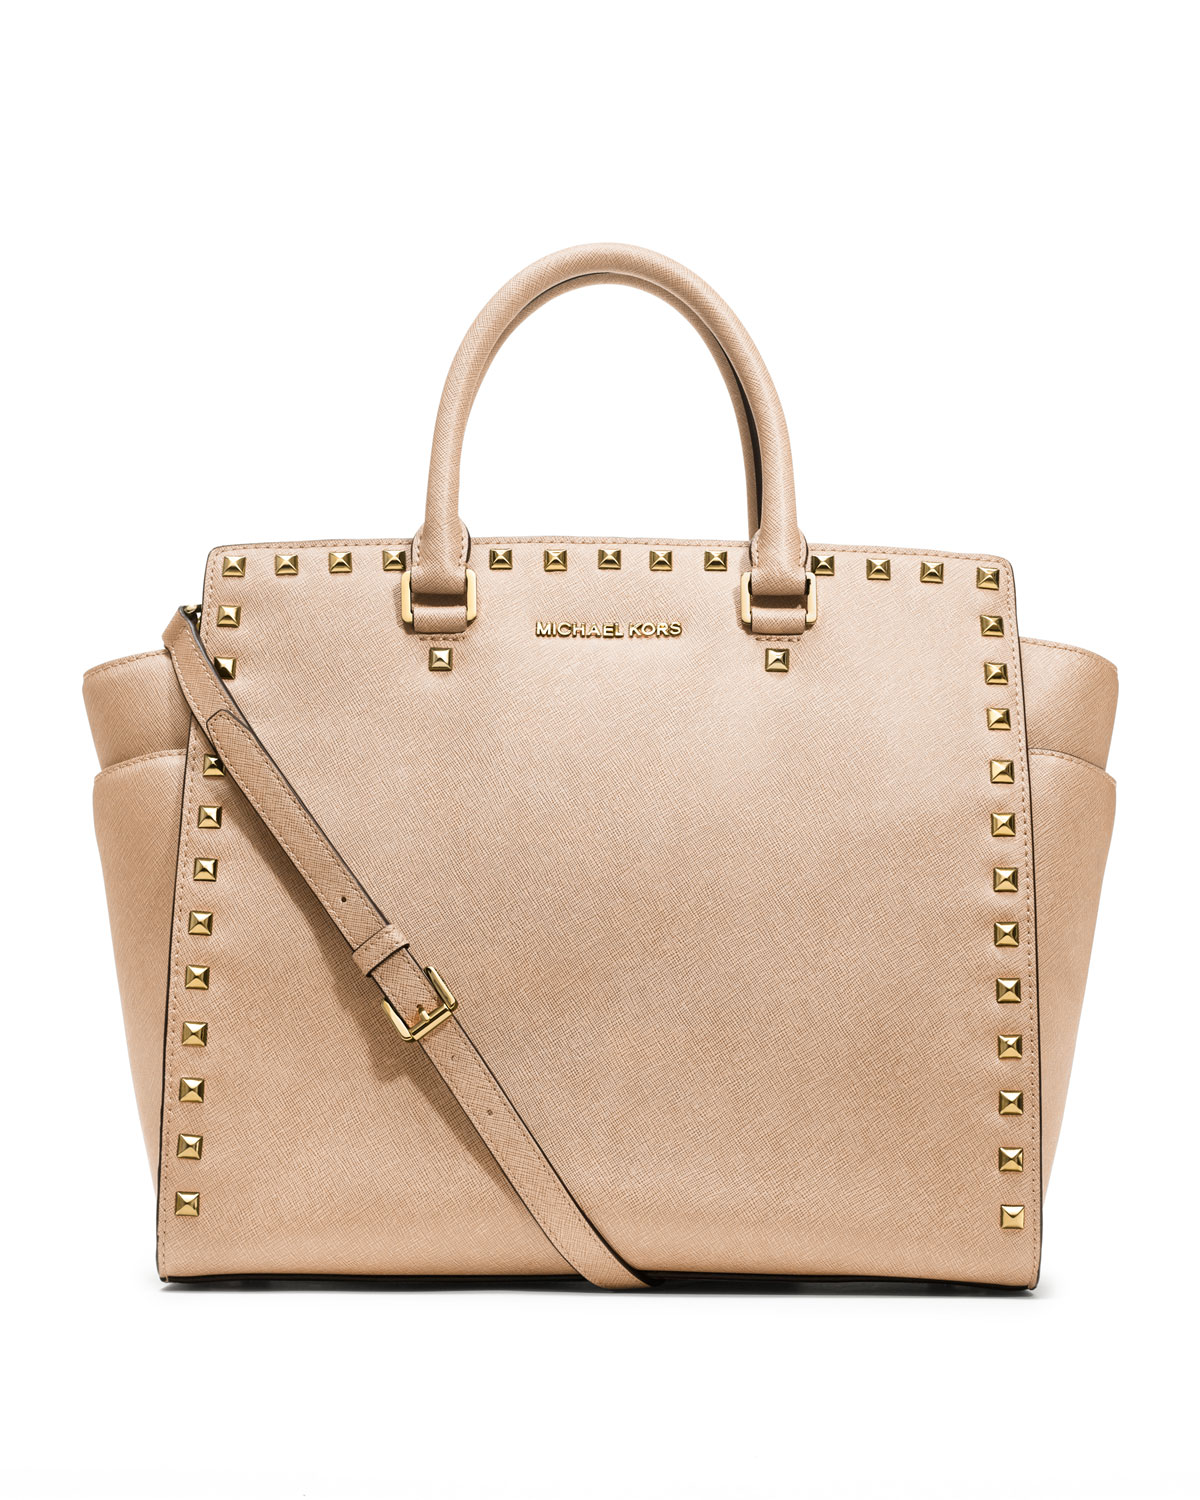 michael michael kors large selma studded saffiano tote in beige dark. Black Bedroom Furniture Sets. Home Design Ideas